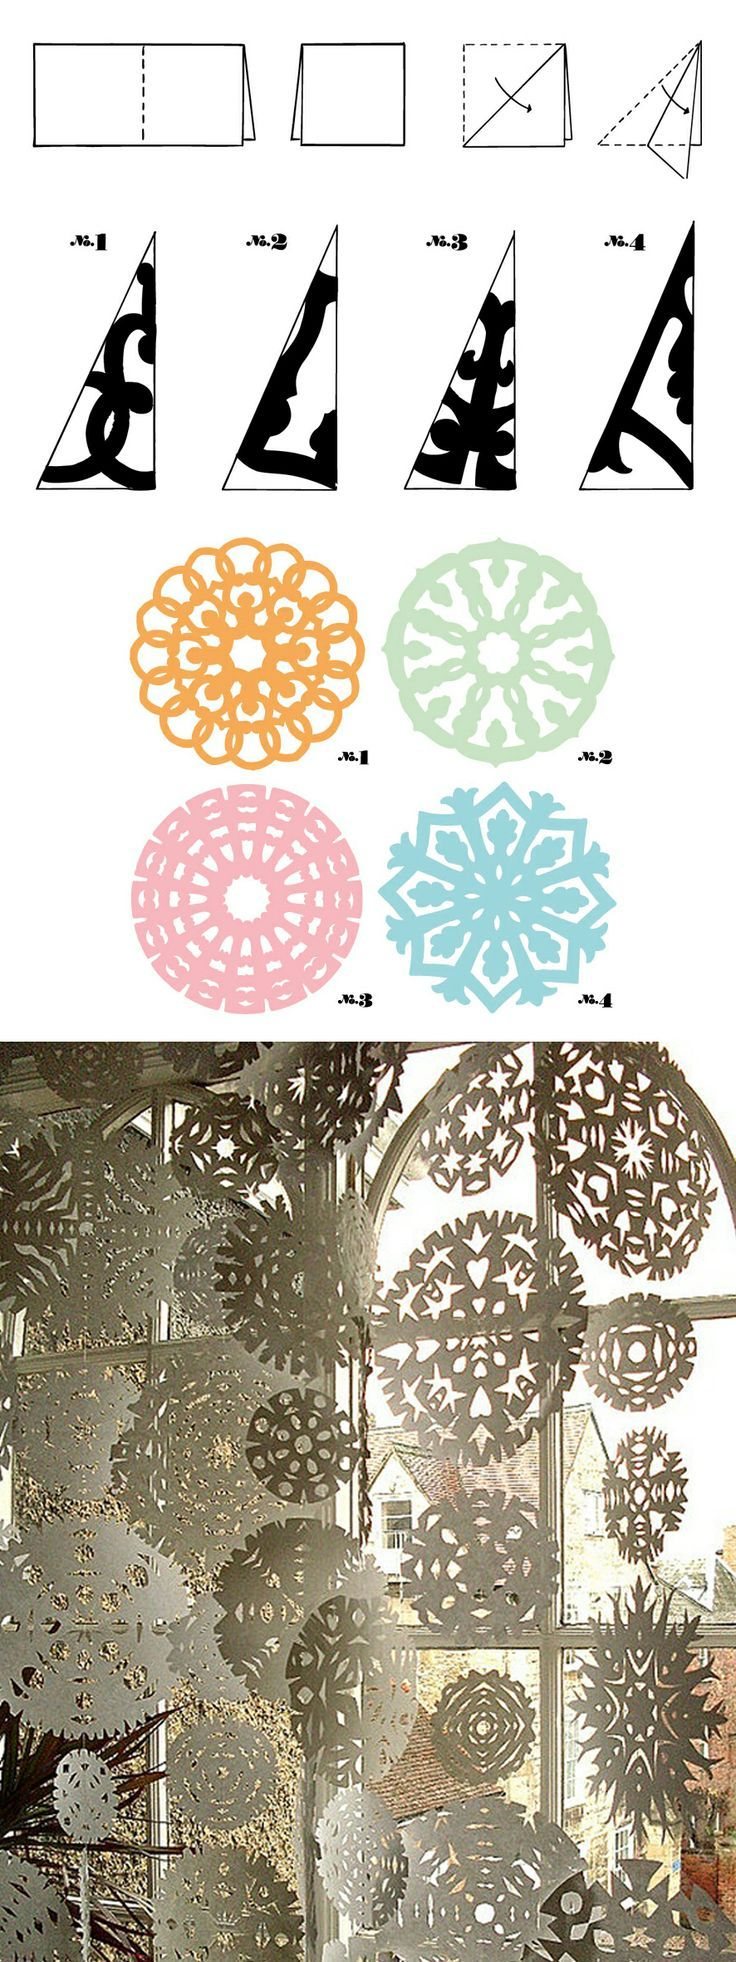 As making paper snowflakes #recycle design: